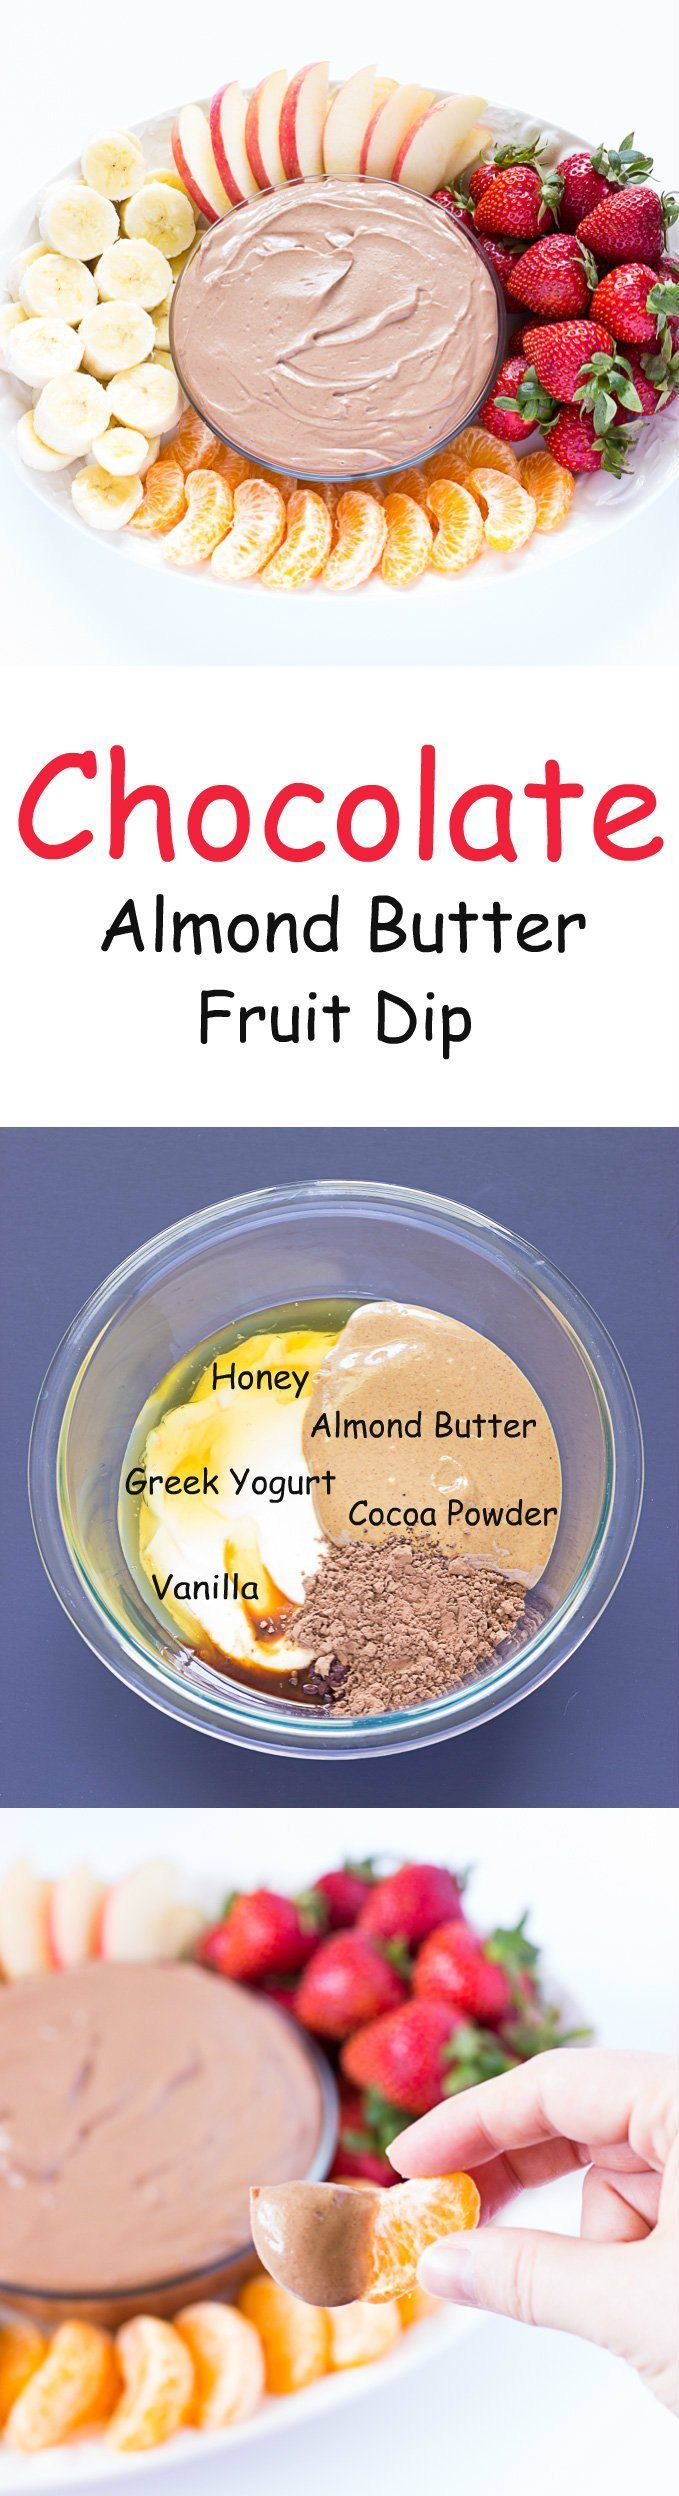 fruit dip healthy healthy fruit snacks brands